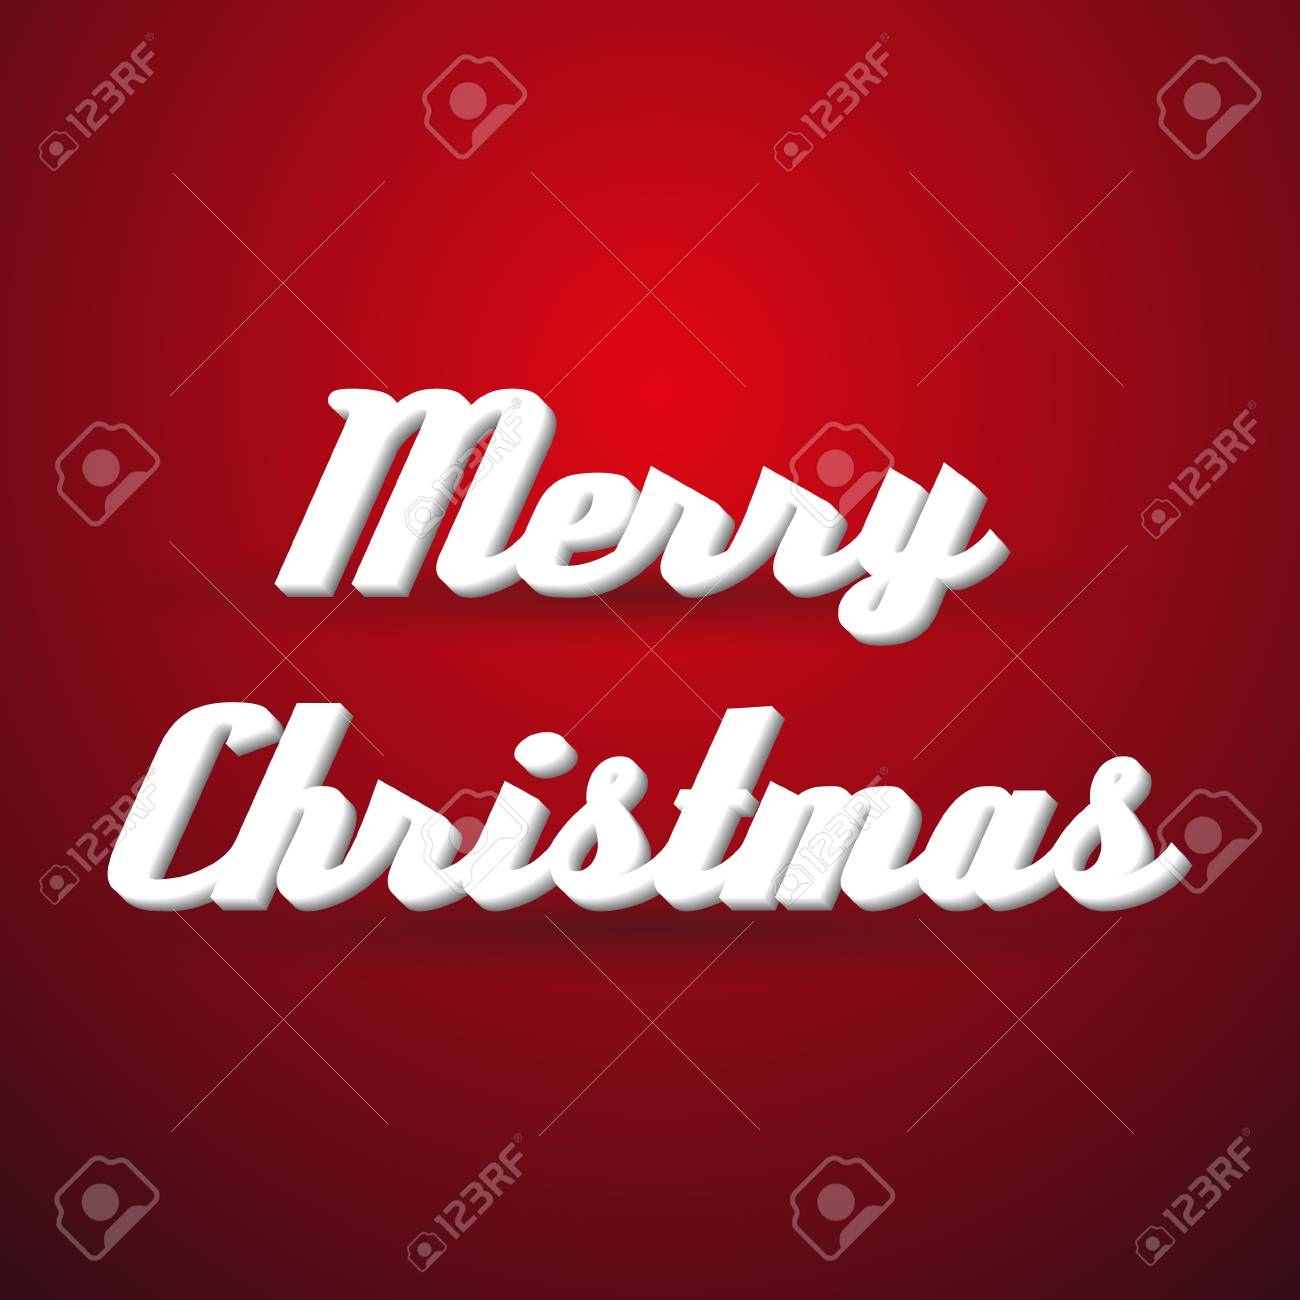 Merry Christmas Holidays Modern Paper Like Text Message On Red ...